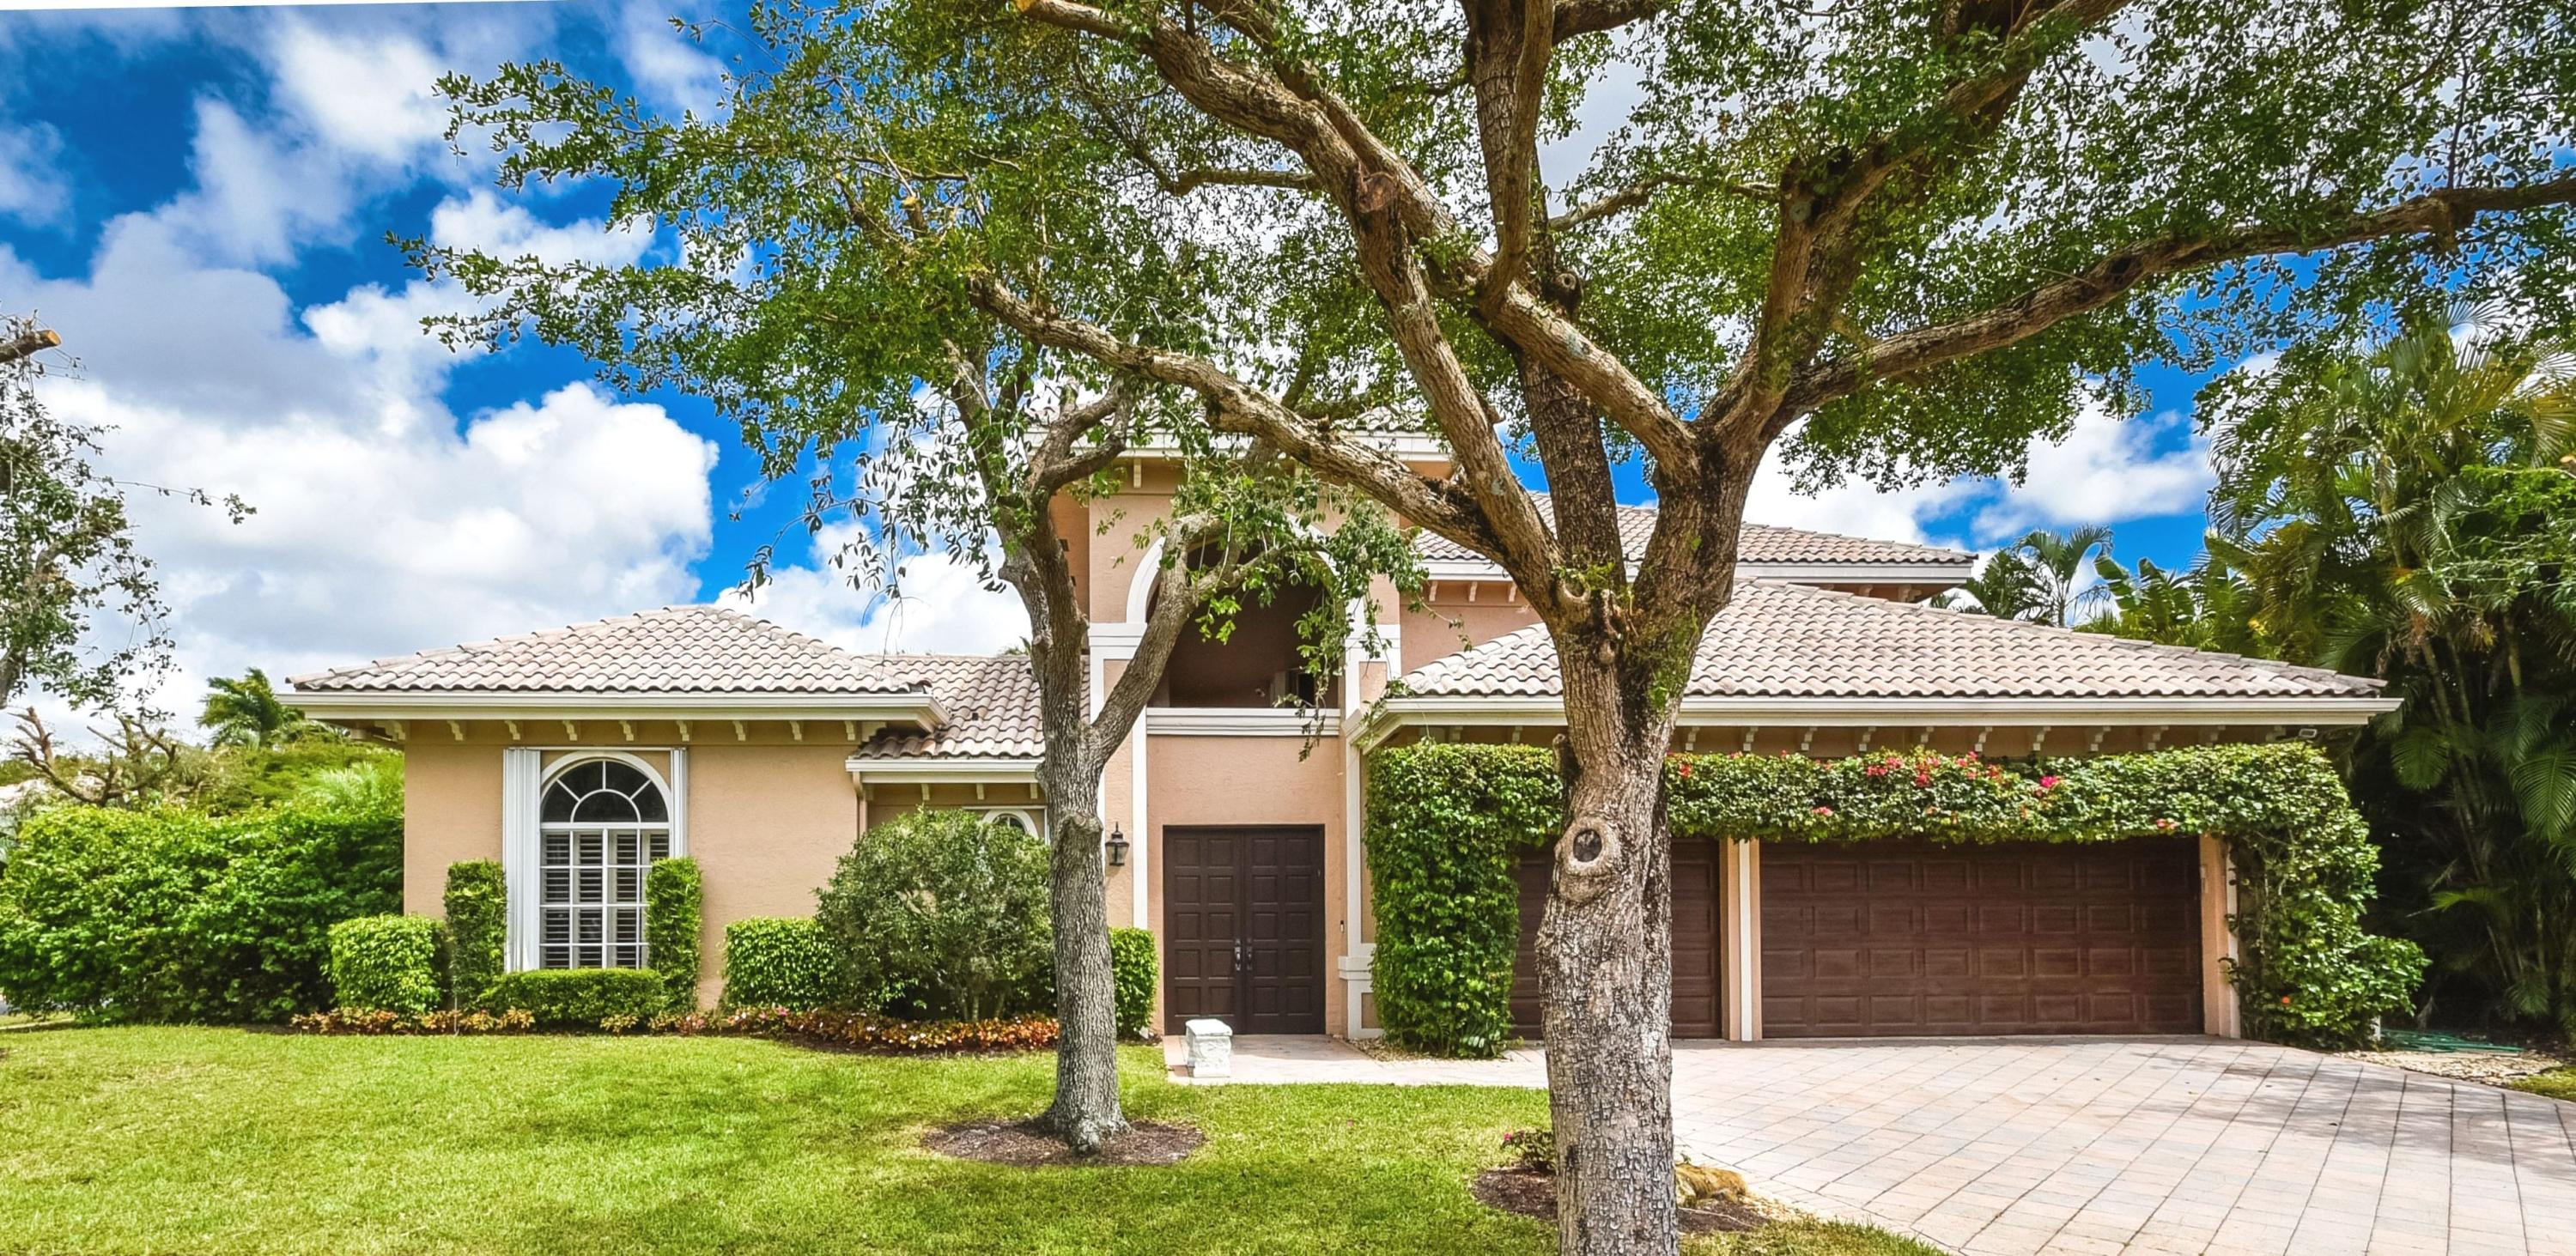 Home for sale in Seasons Boca Raton Florida